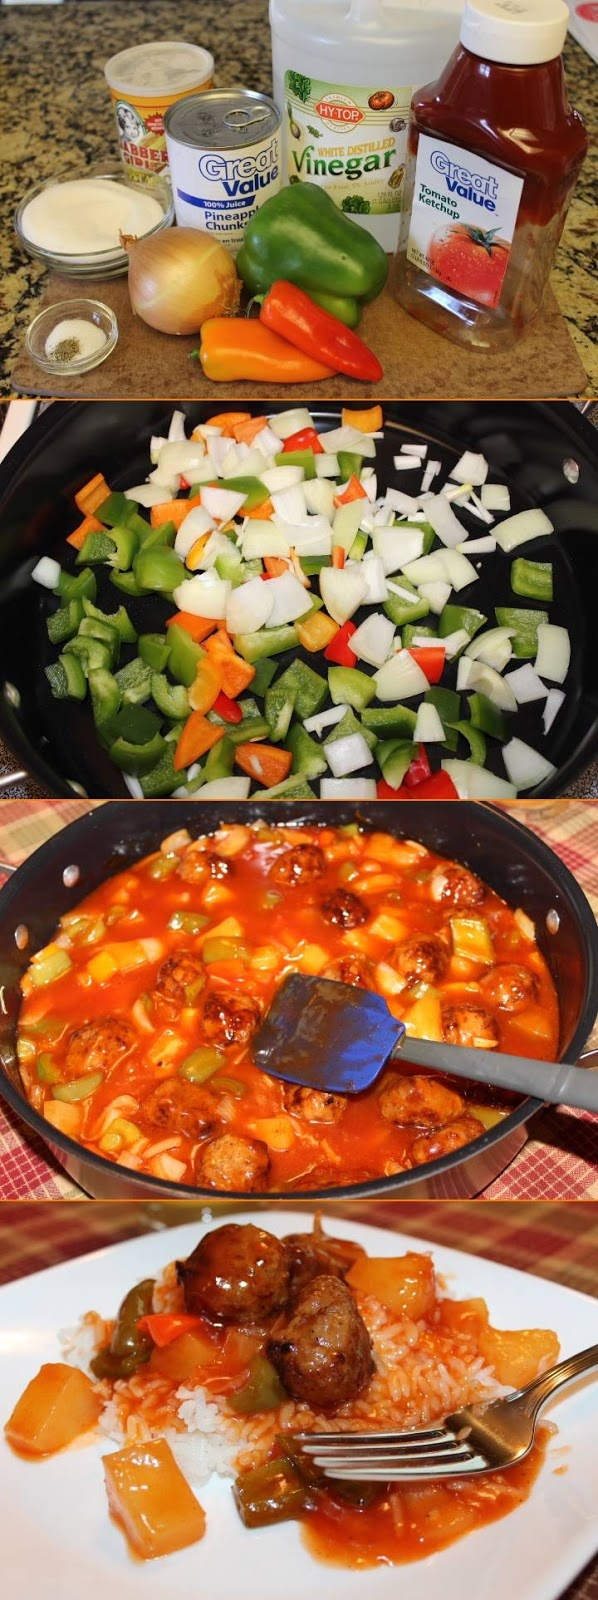 Sweet & Sour Sauce, with meatballs or chicken - flavorful and easy ...